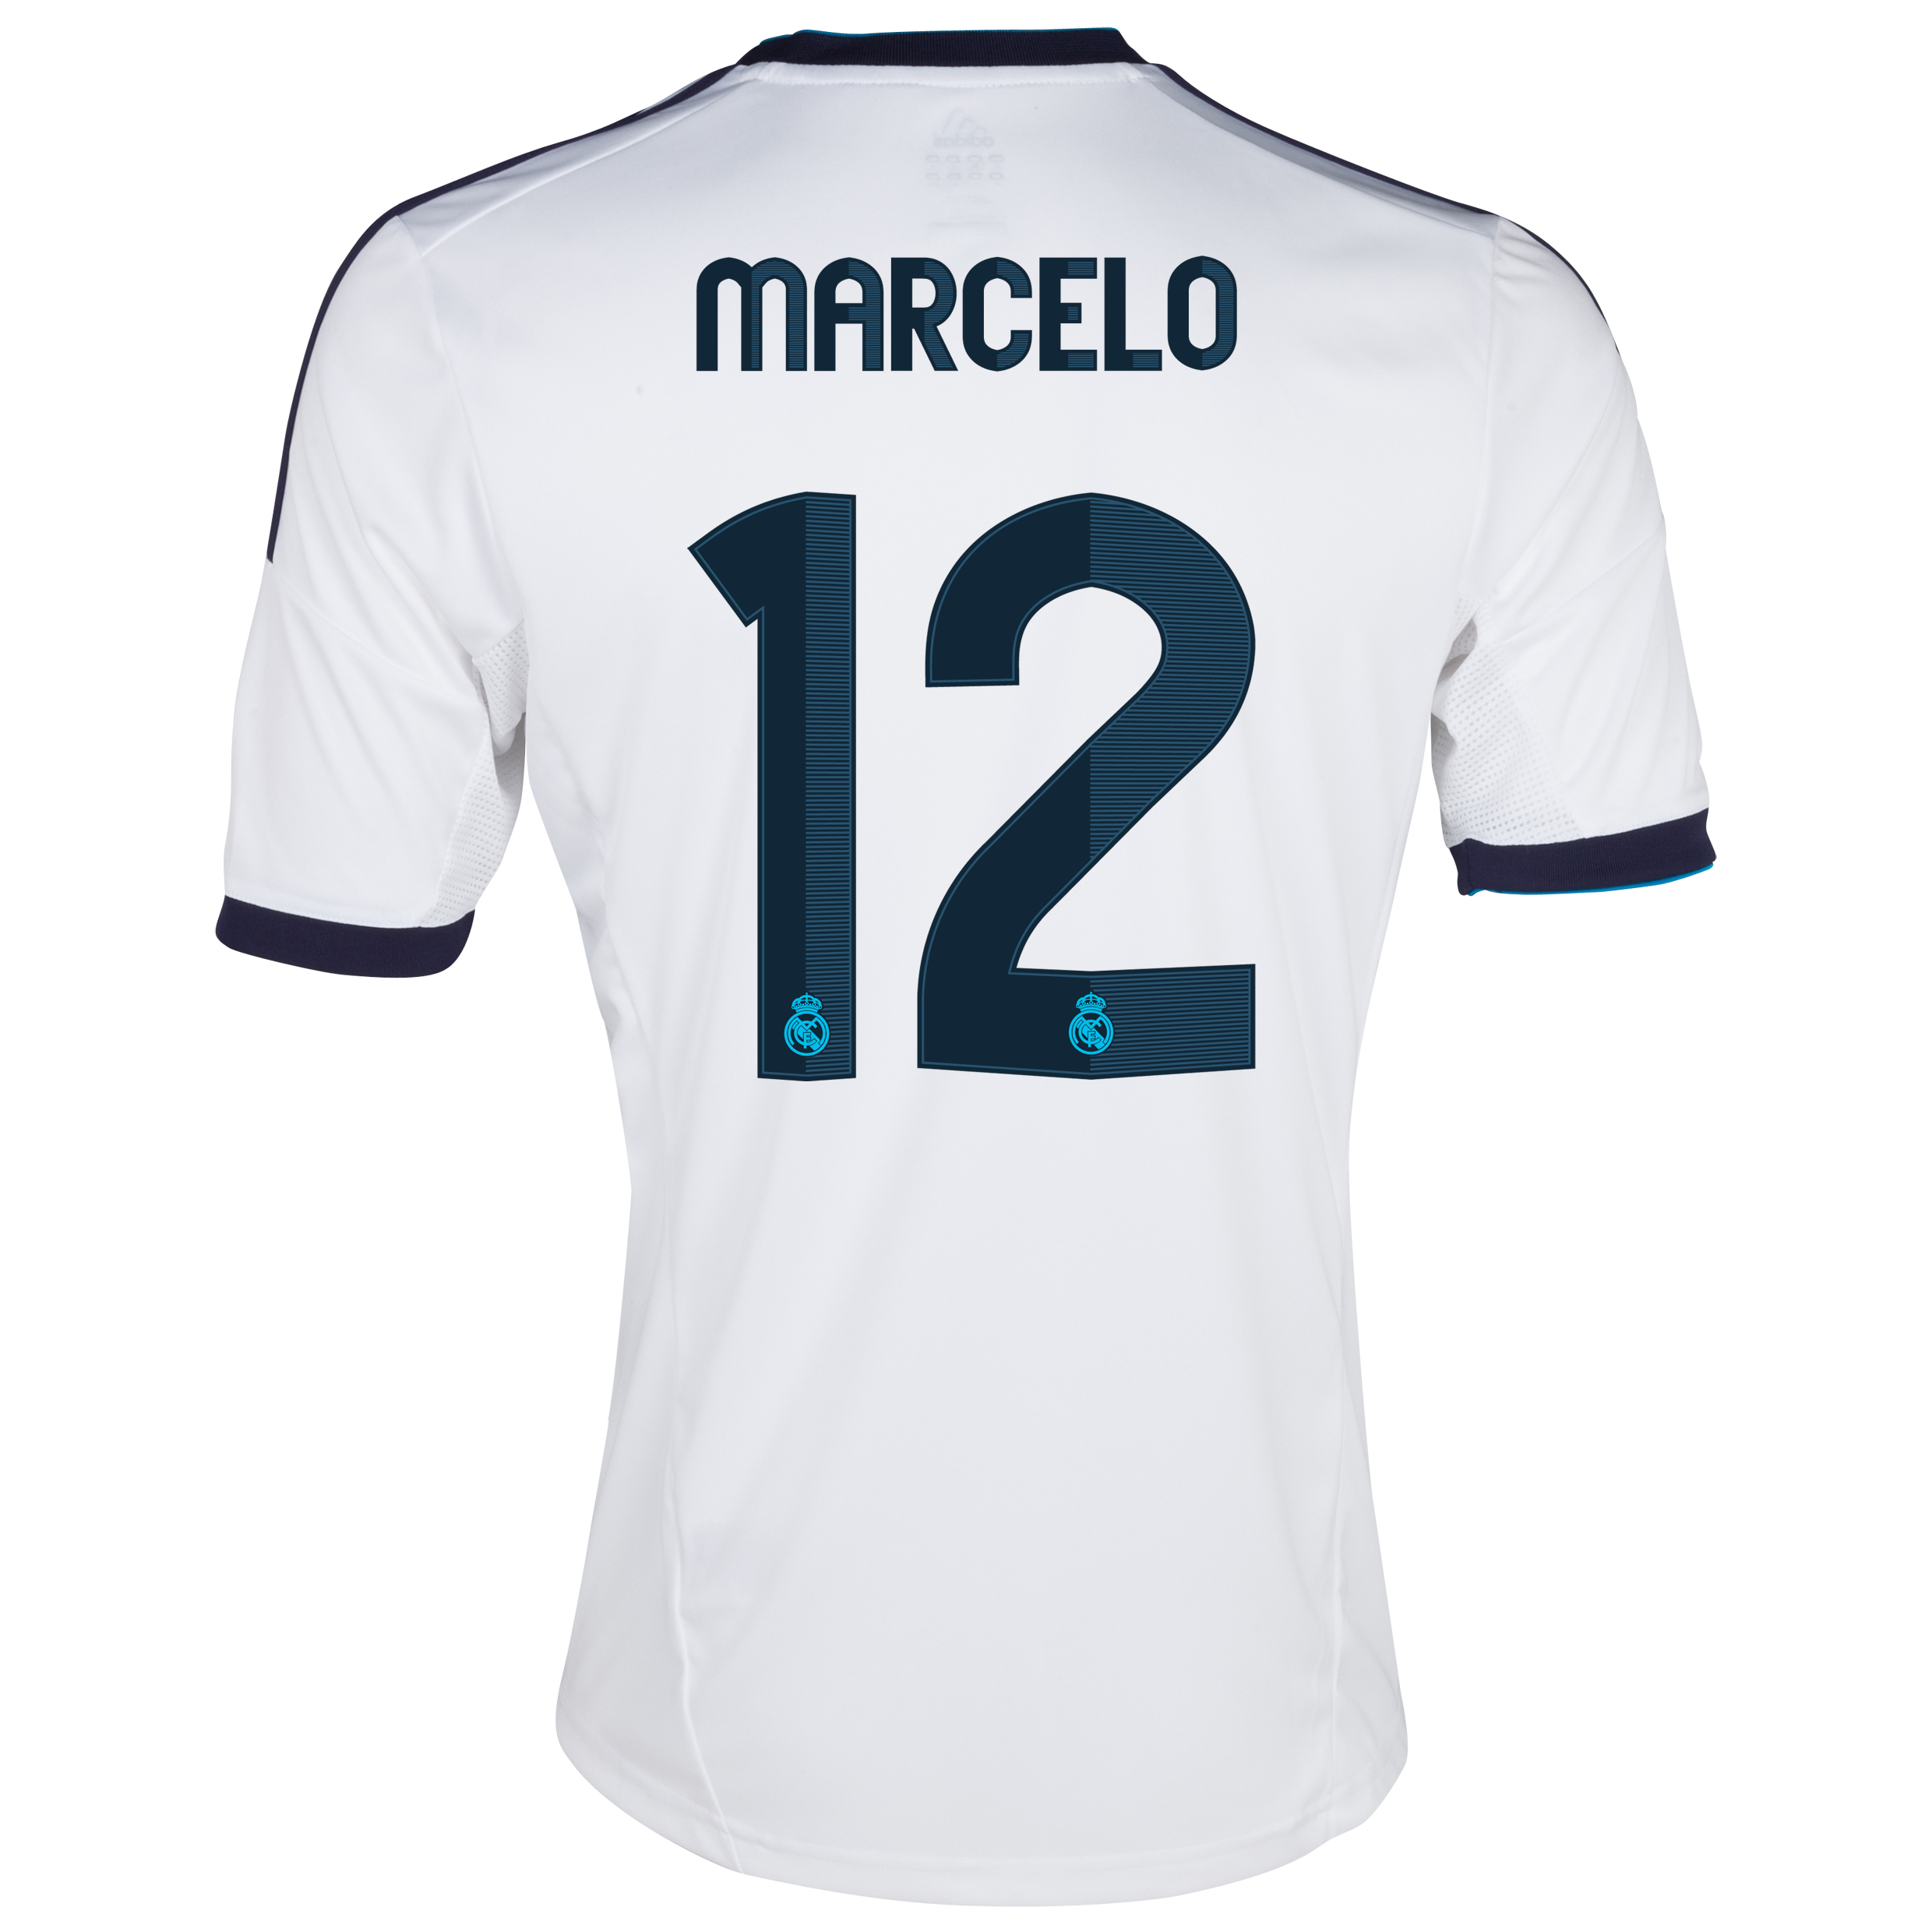 Camiseta 1 equipacin del Real Madrid 2012/13 Cadete con Marcelo 12